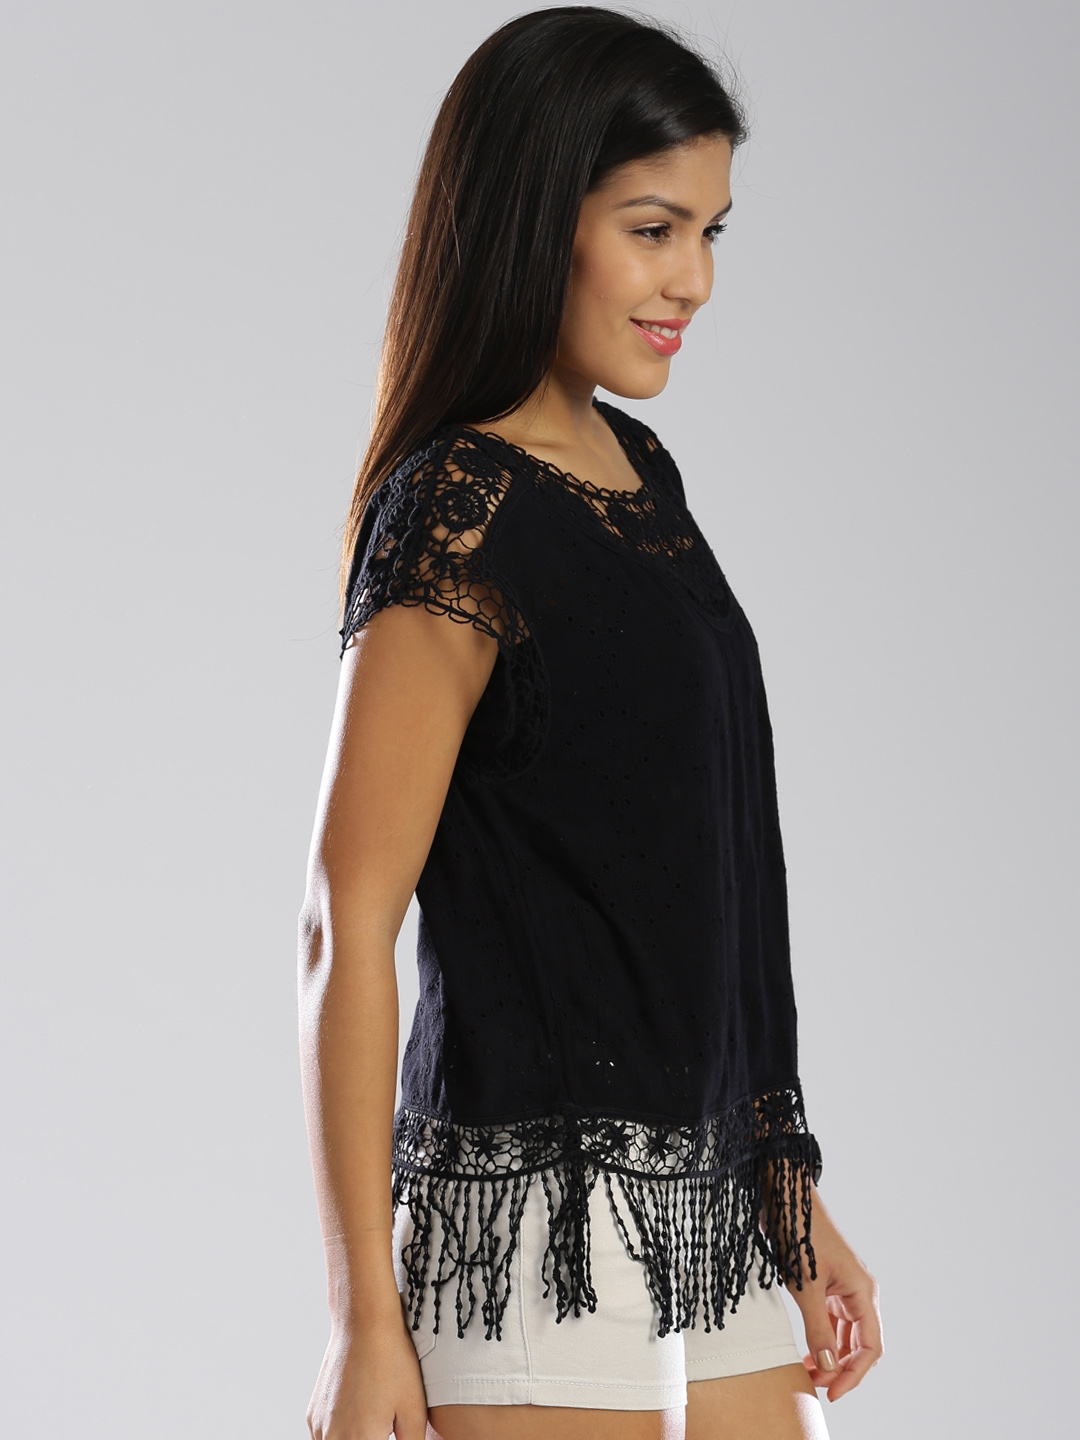 Buy Superdry Black Schiffli Crochet Fringe Top Tops For Women